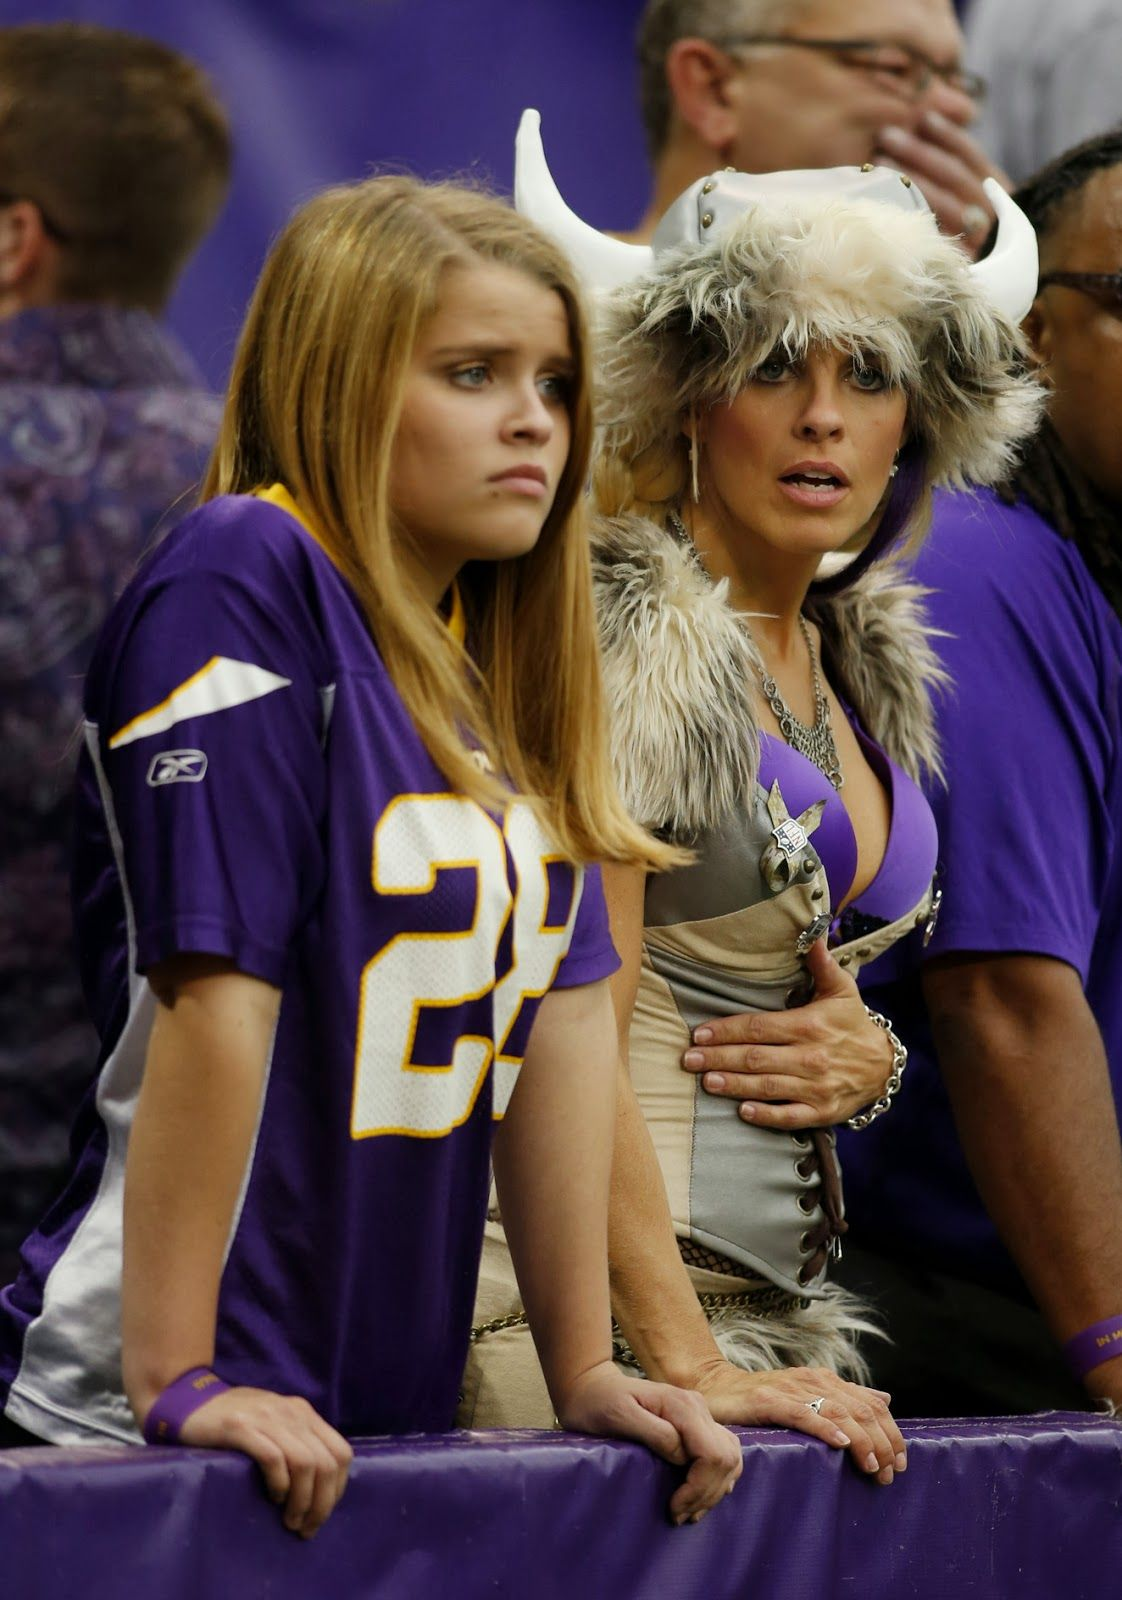 Minnesota Vikings Fans Vikings Cheerleaders Nfl Football Cheerleaders